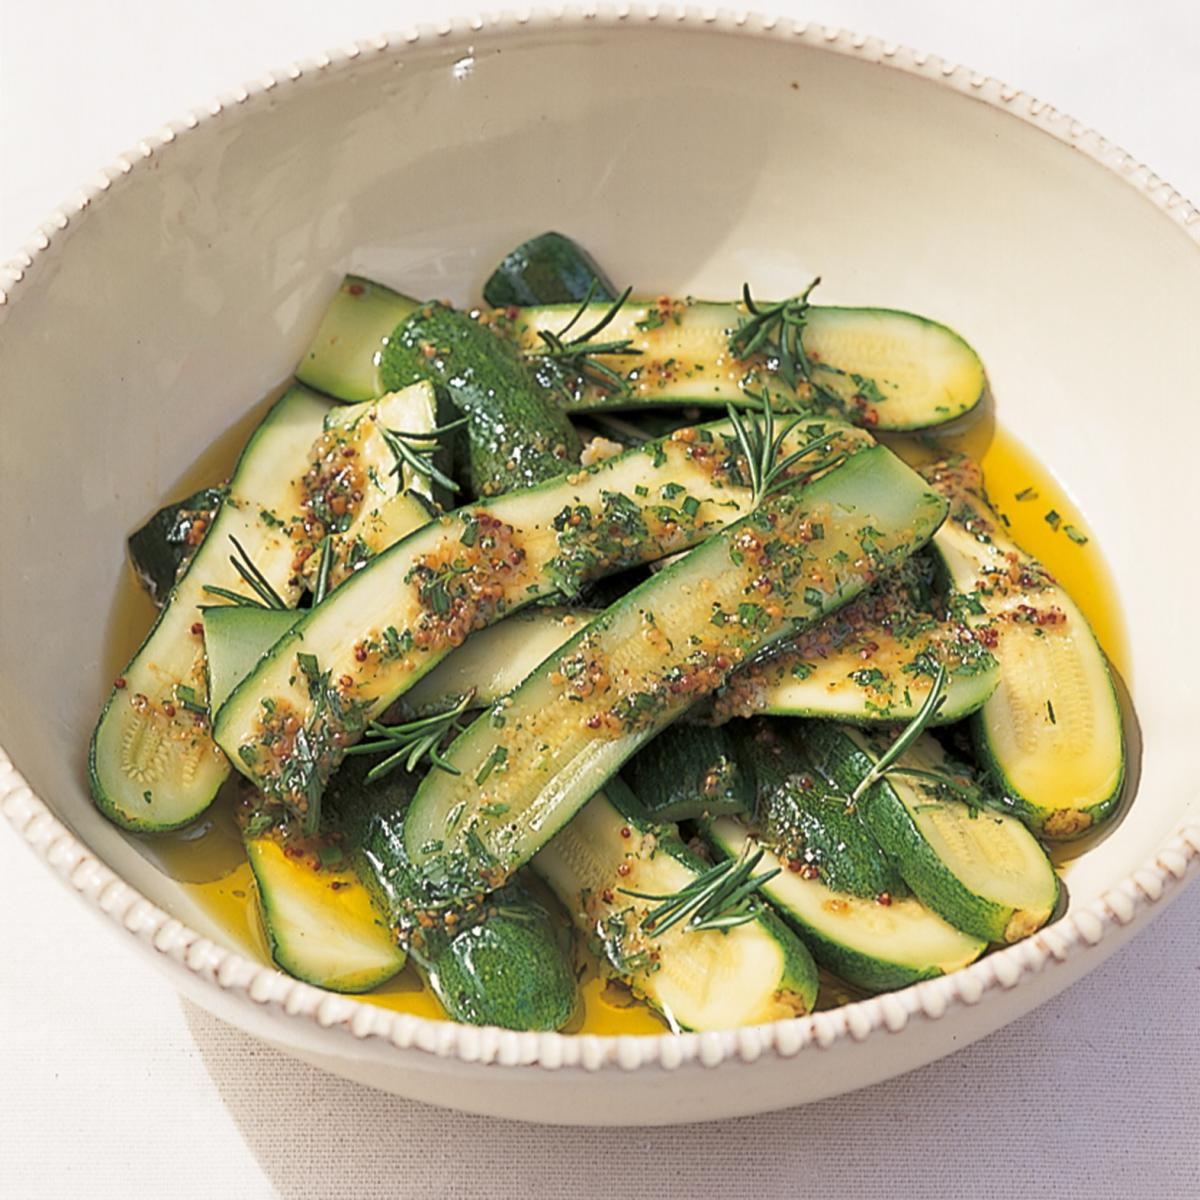 A picture of Delia's How to roast courgettes how to cook guide